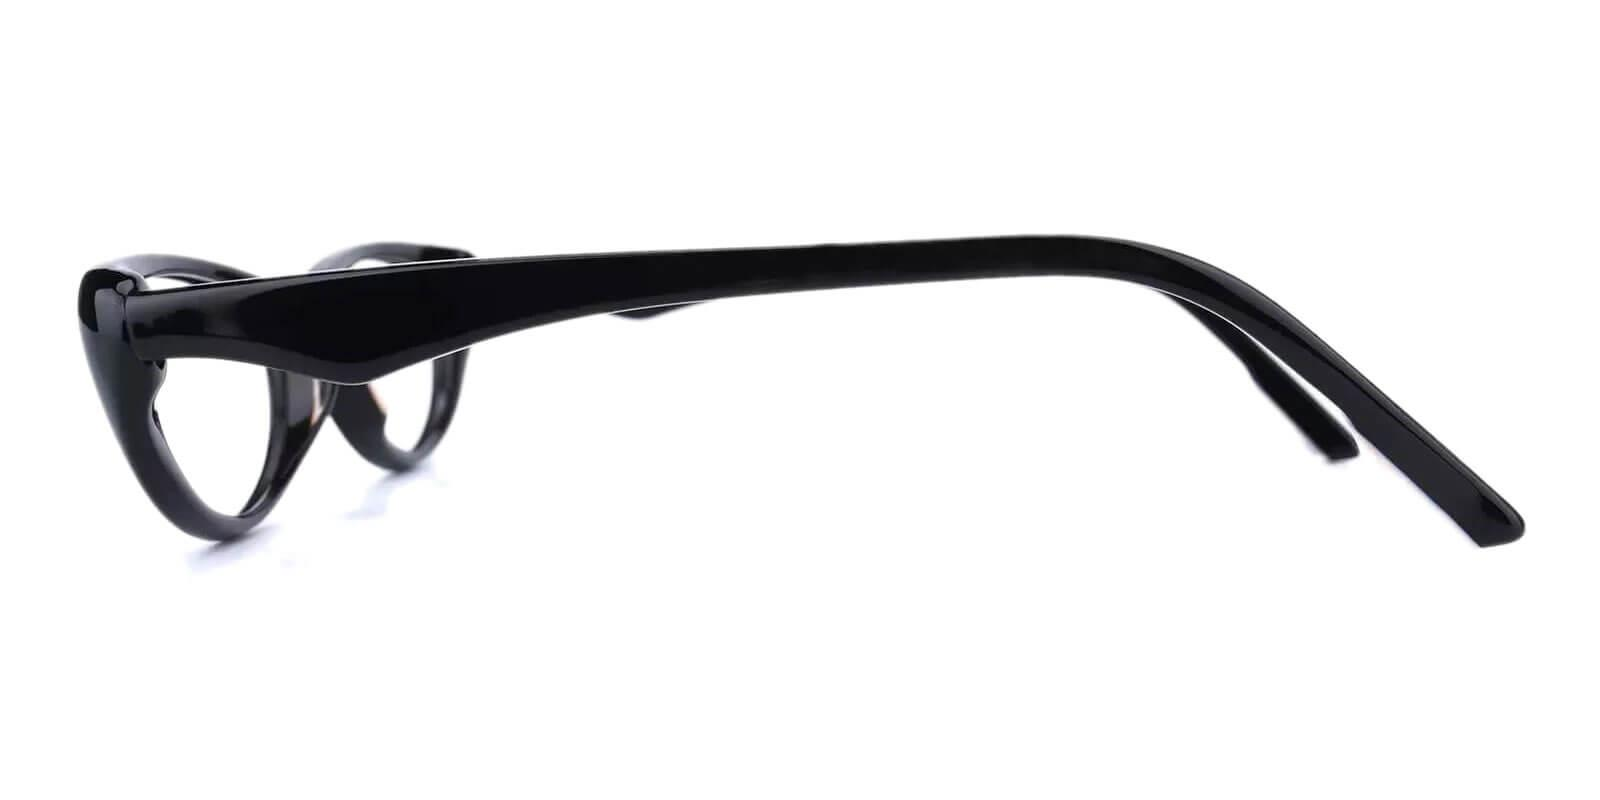 Nevaeh Black Acetate Eyeglasses , UniversalBridgeFit Frames from ABBE Glasses